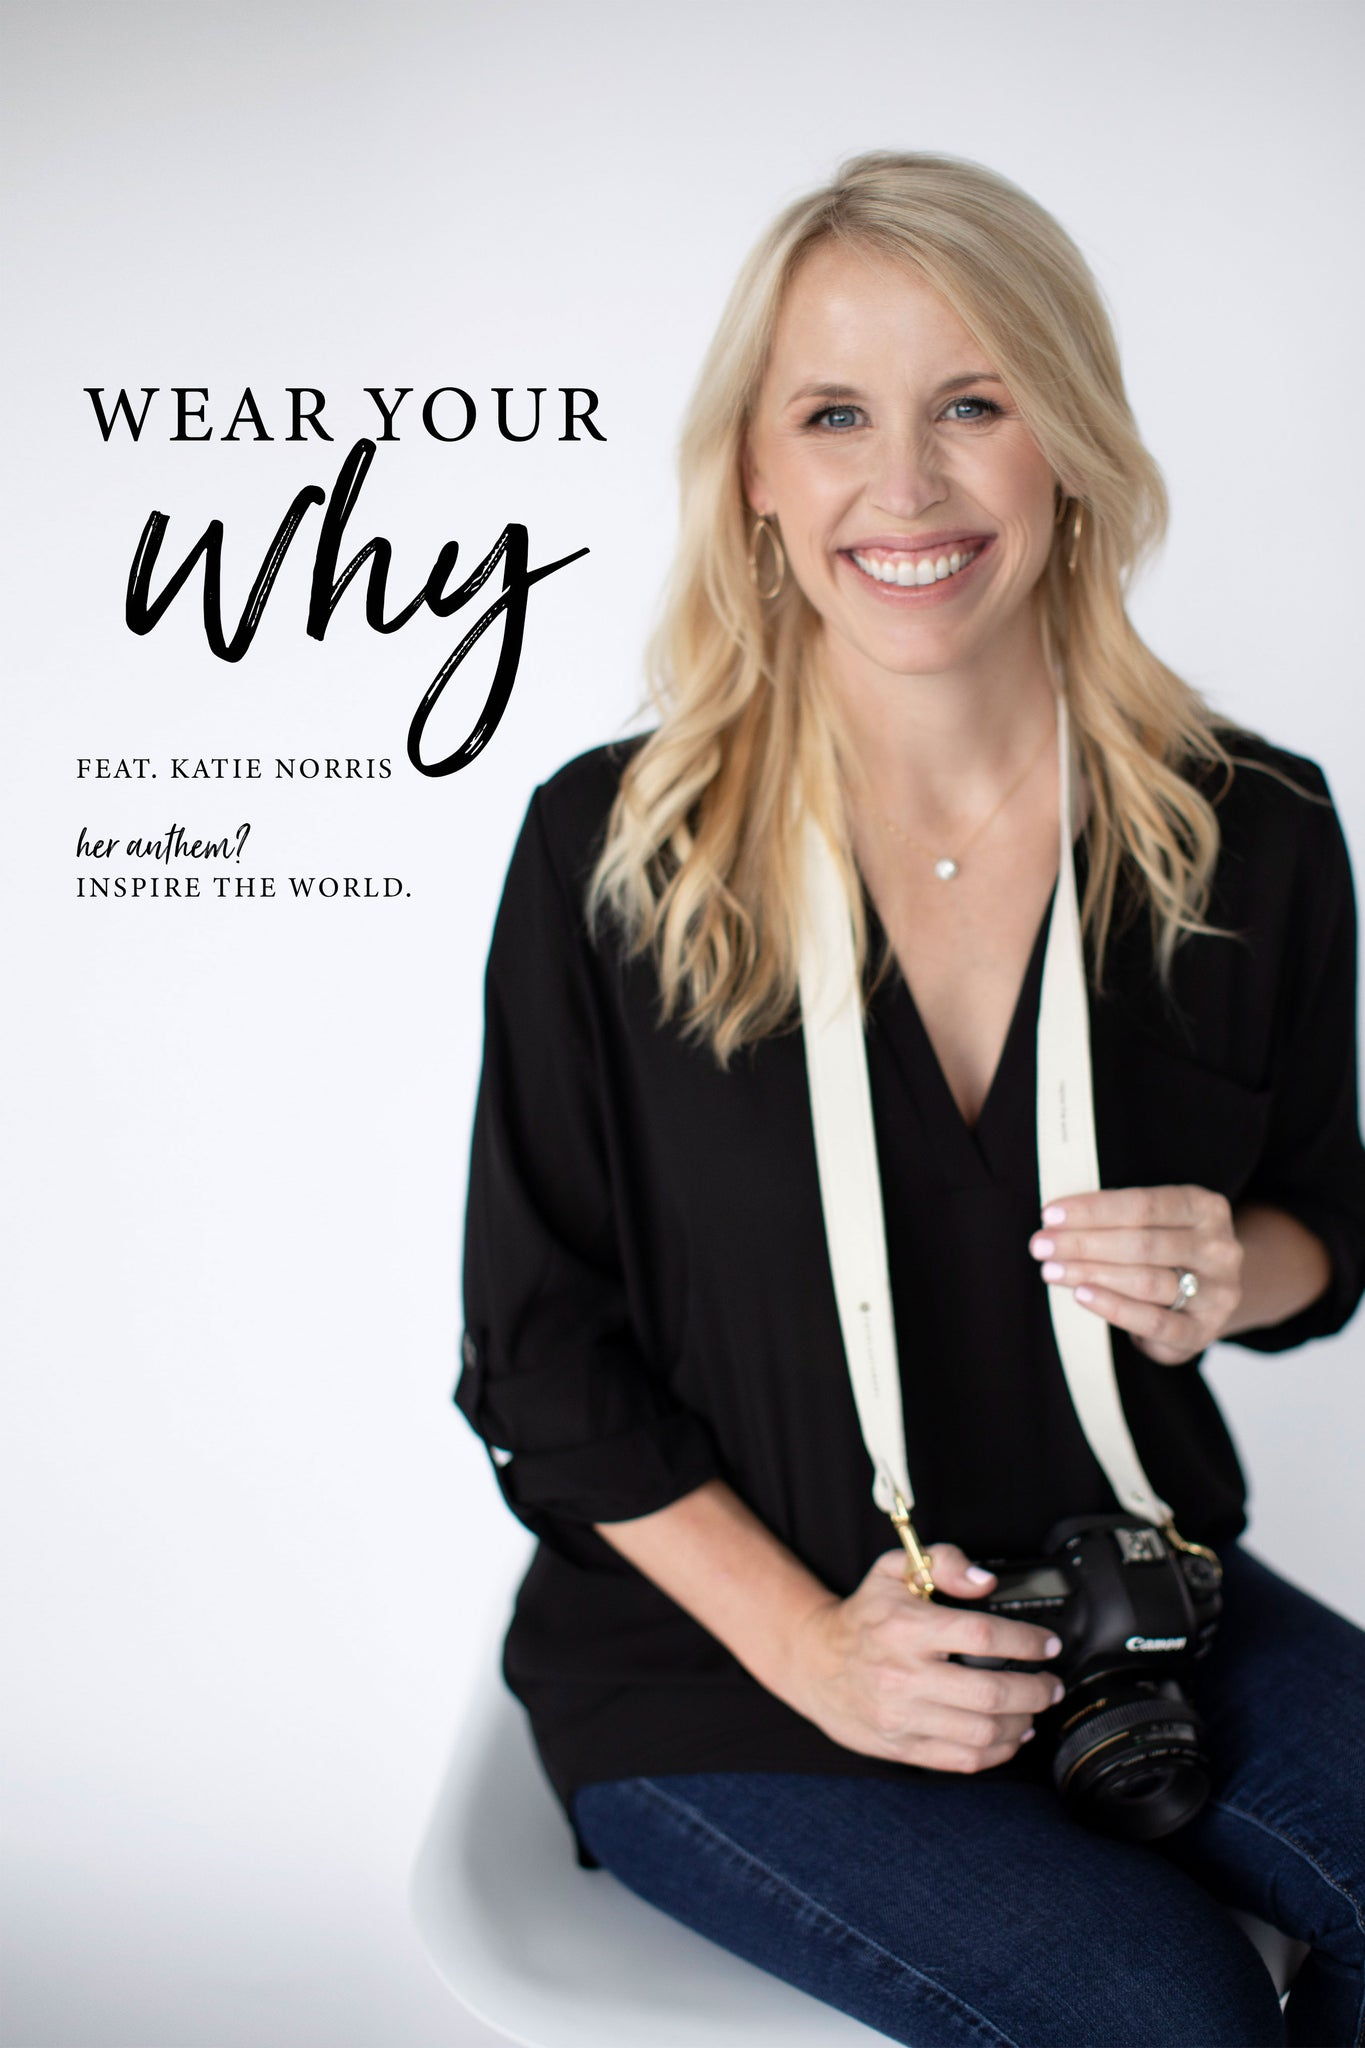 Katie Norris Wears Her Why to Inspire the World - Fotostrap Blog